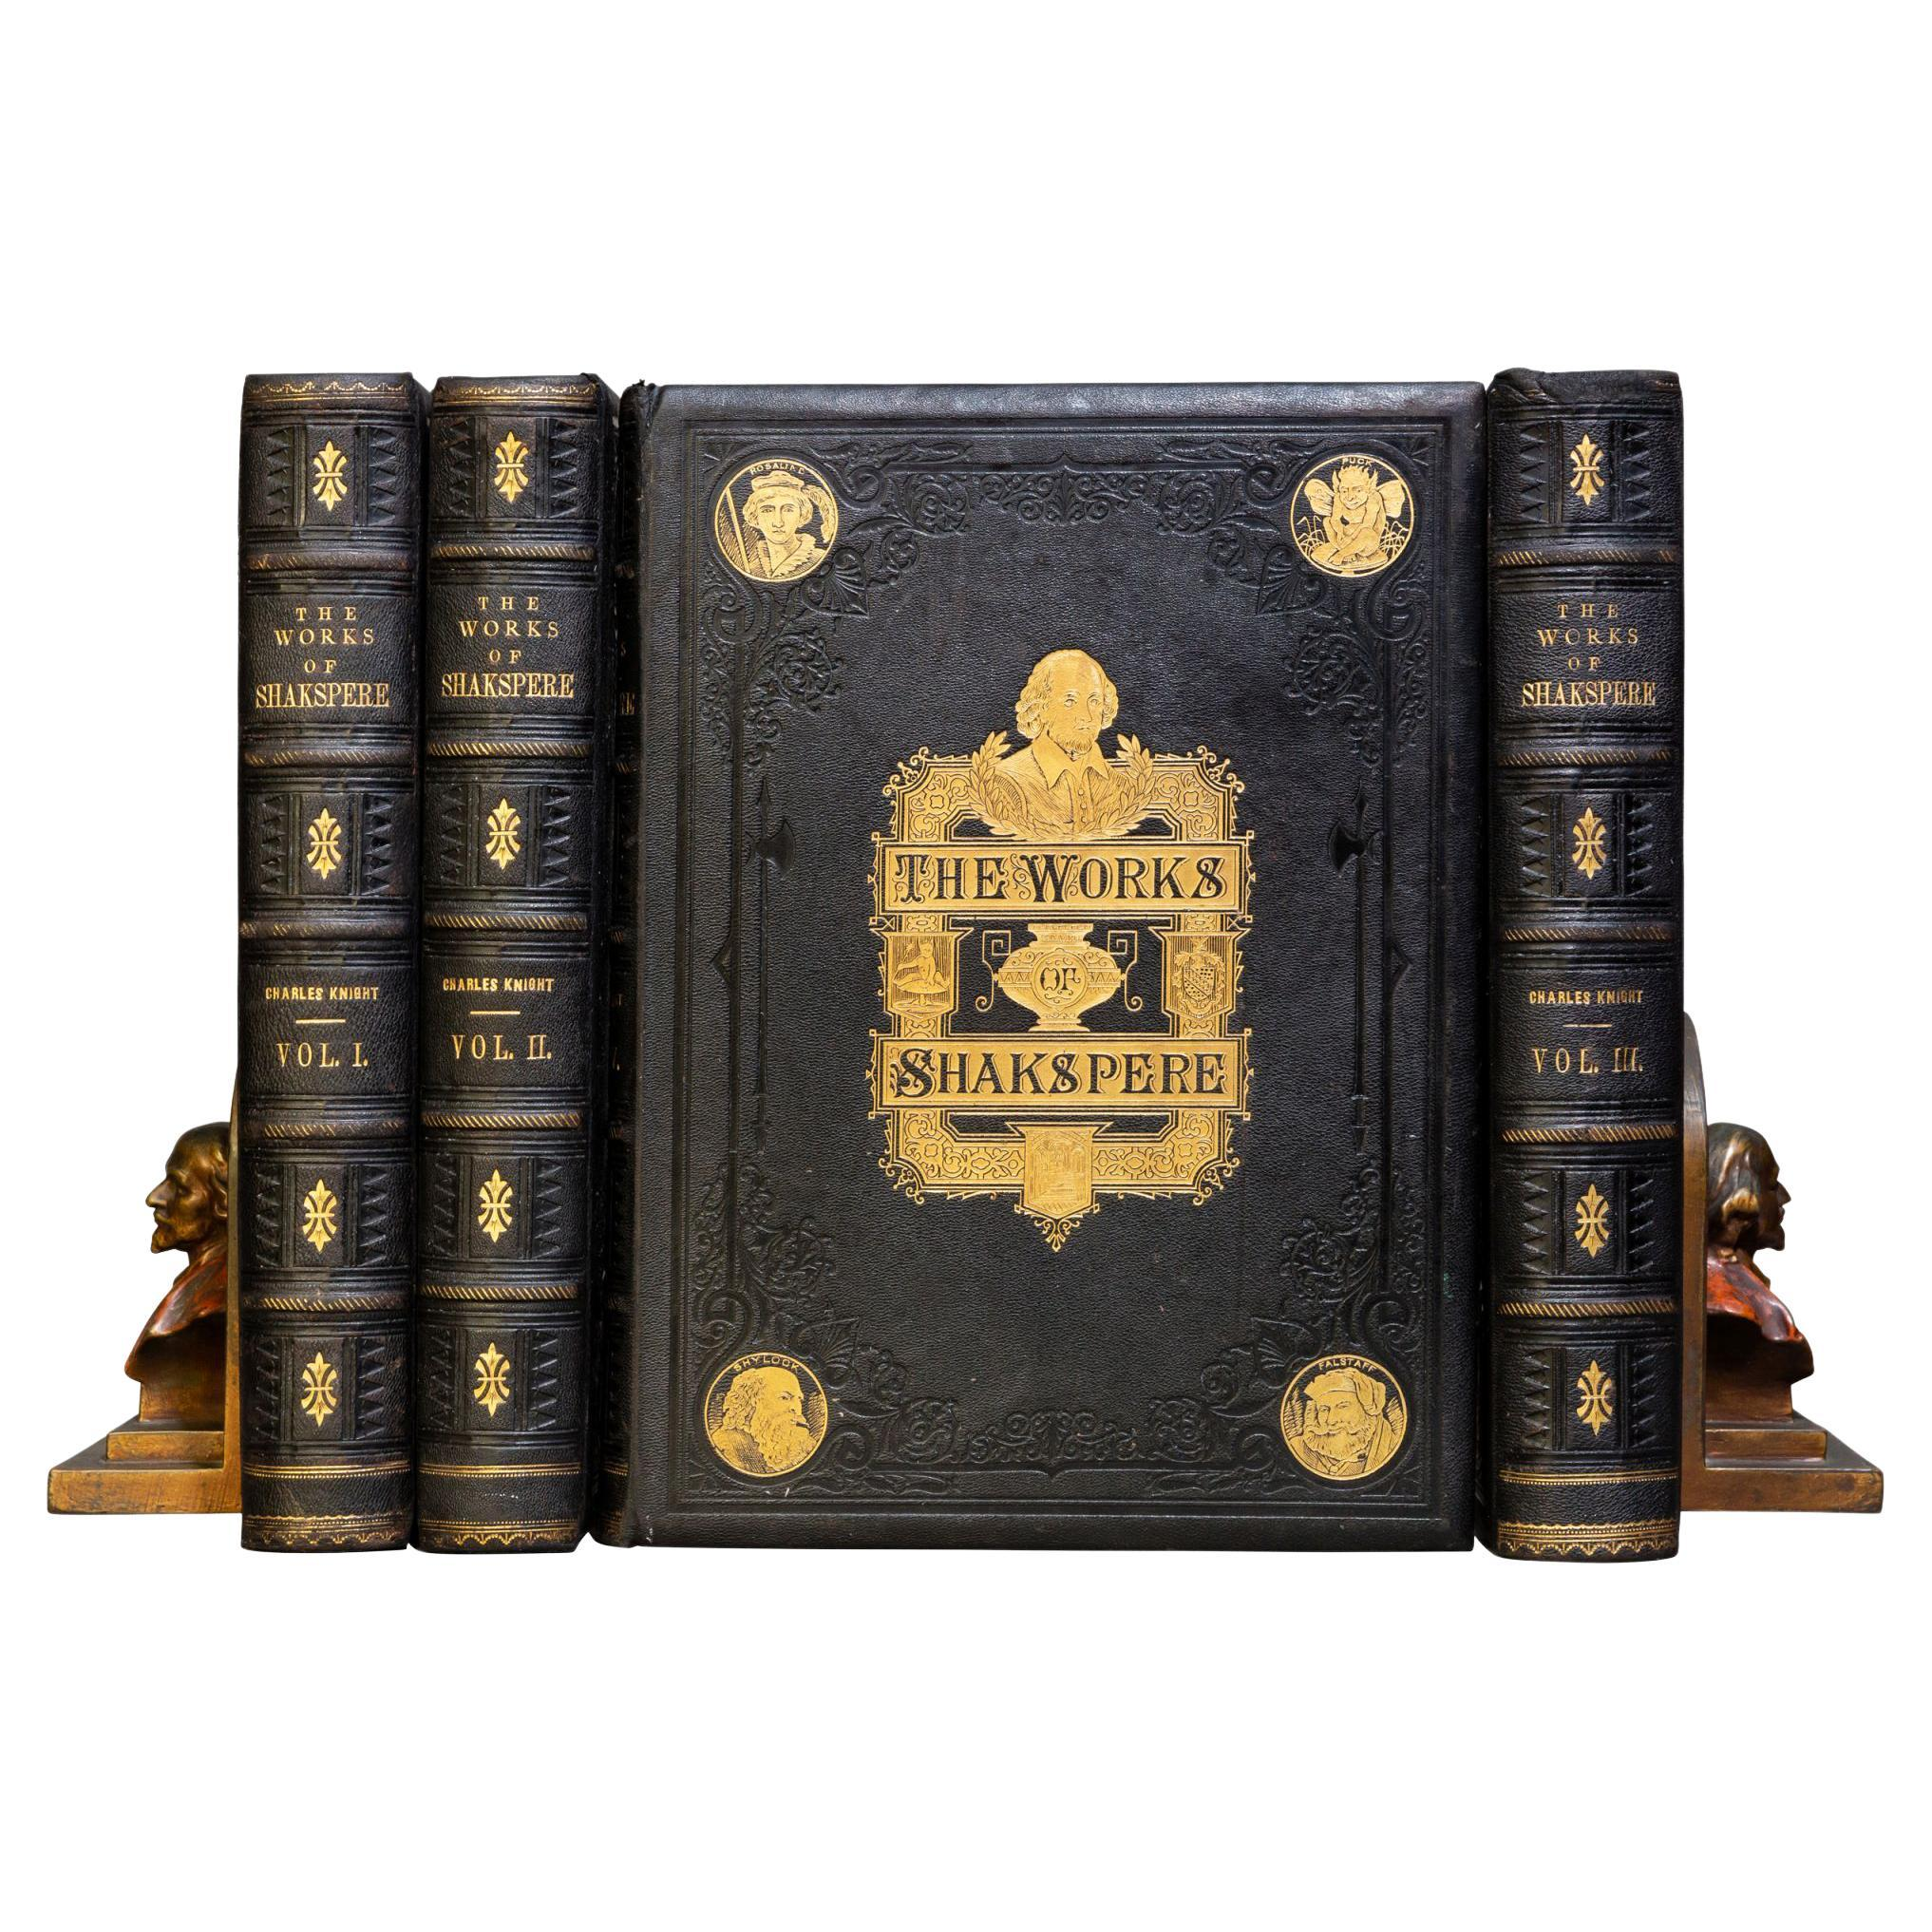 'Book Sets' 4 Volumes, William Shakespeare, The Complete Works